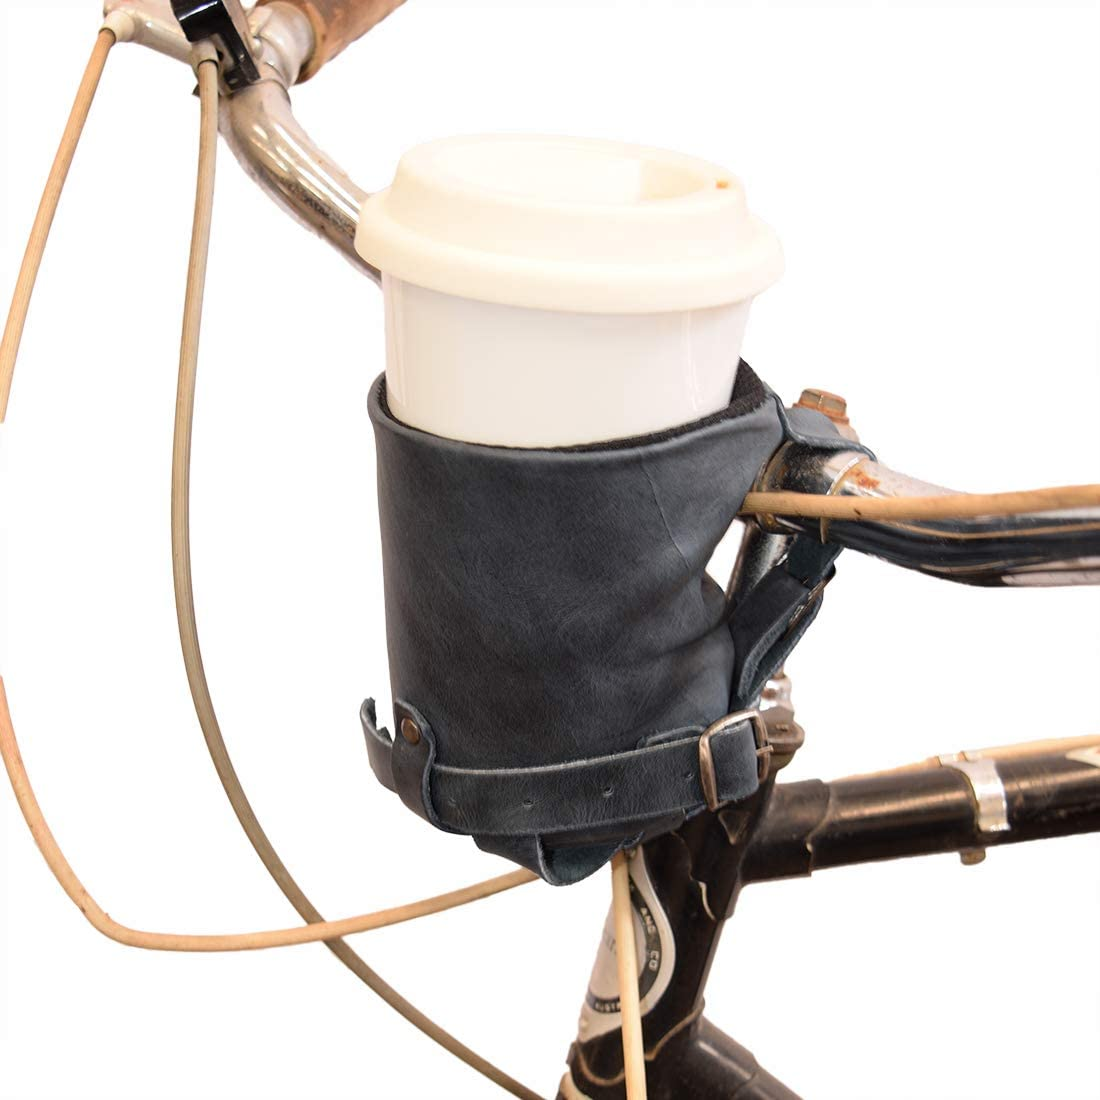 Hide & Drink, Cruzy Leather Bike Handlebar Cup Holder, Insulated Beverage Pouch for Commuters, Minimalist Bikers, Cyclers, City Nomads, Urban Nomad Handmade Includes 101 Year Warranty :: Slate Blue